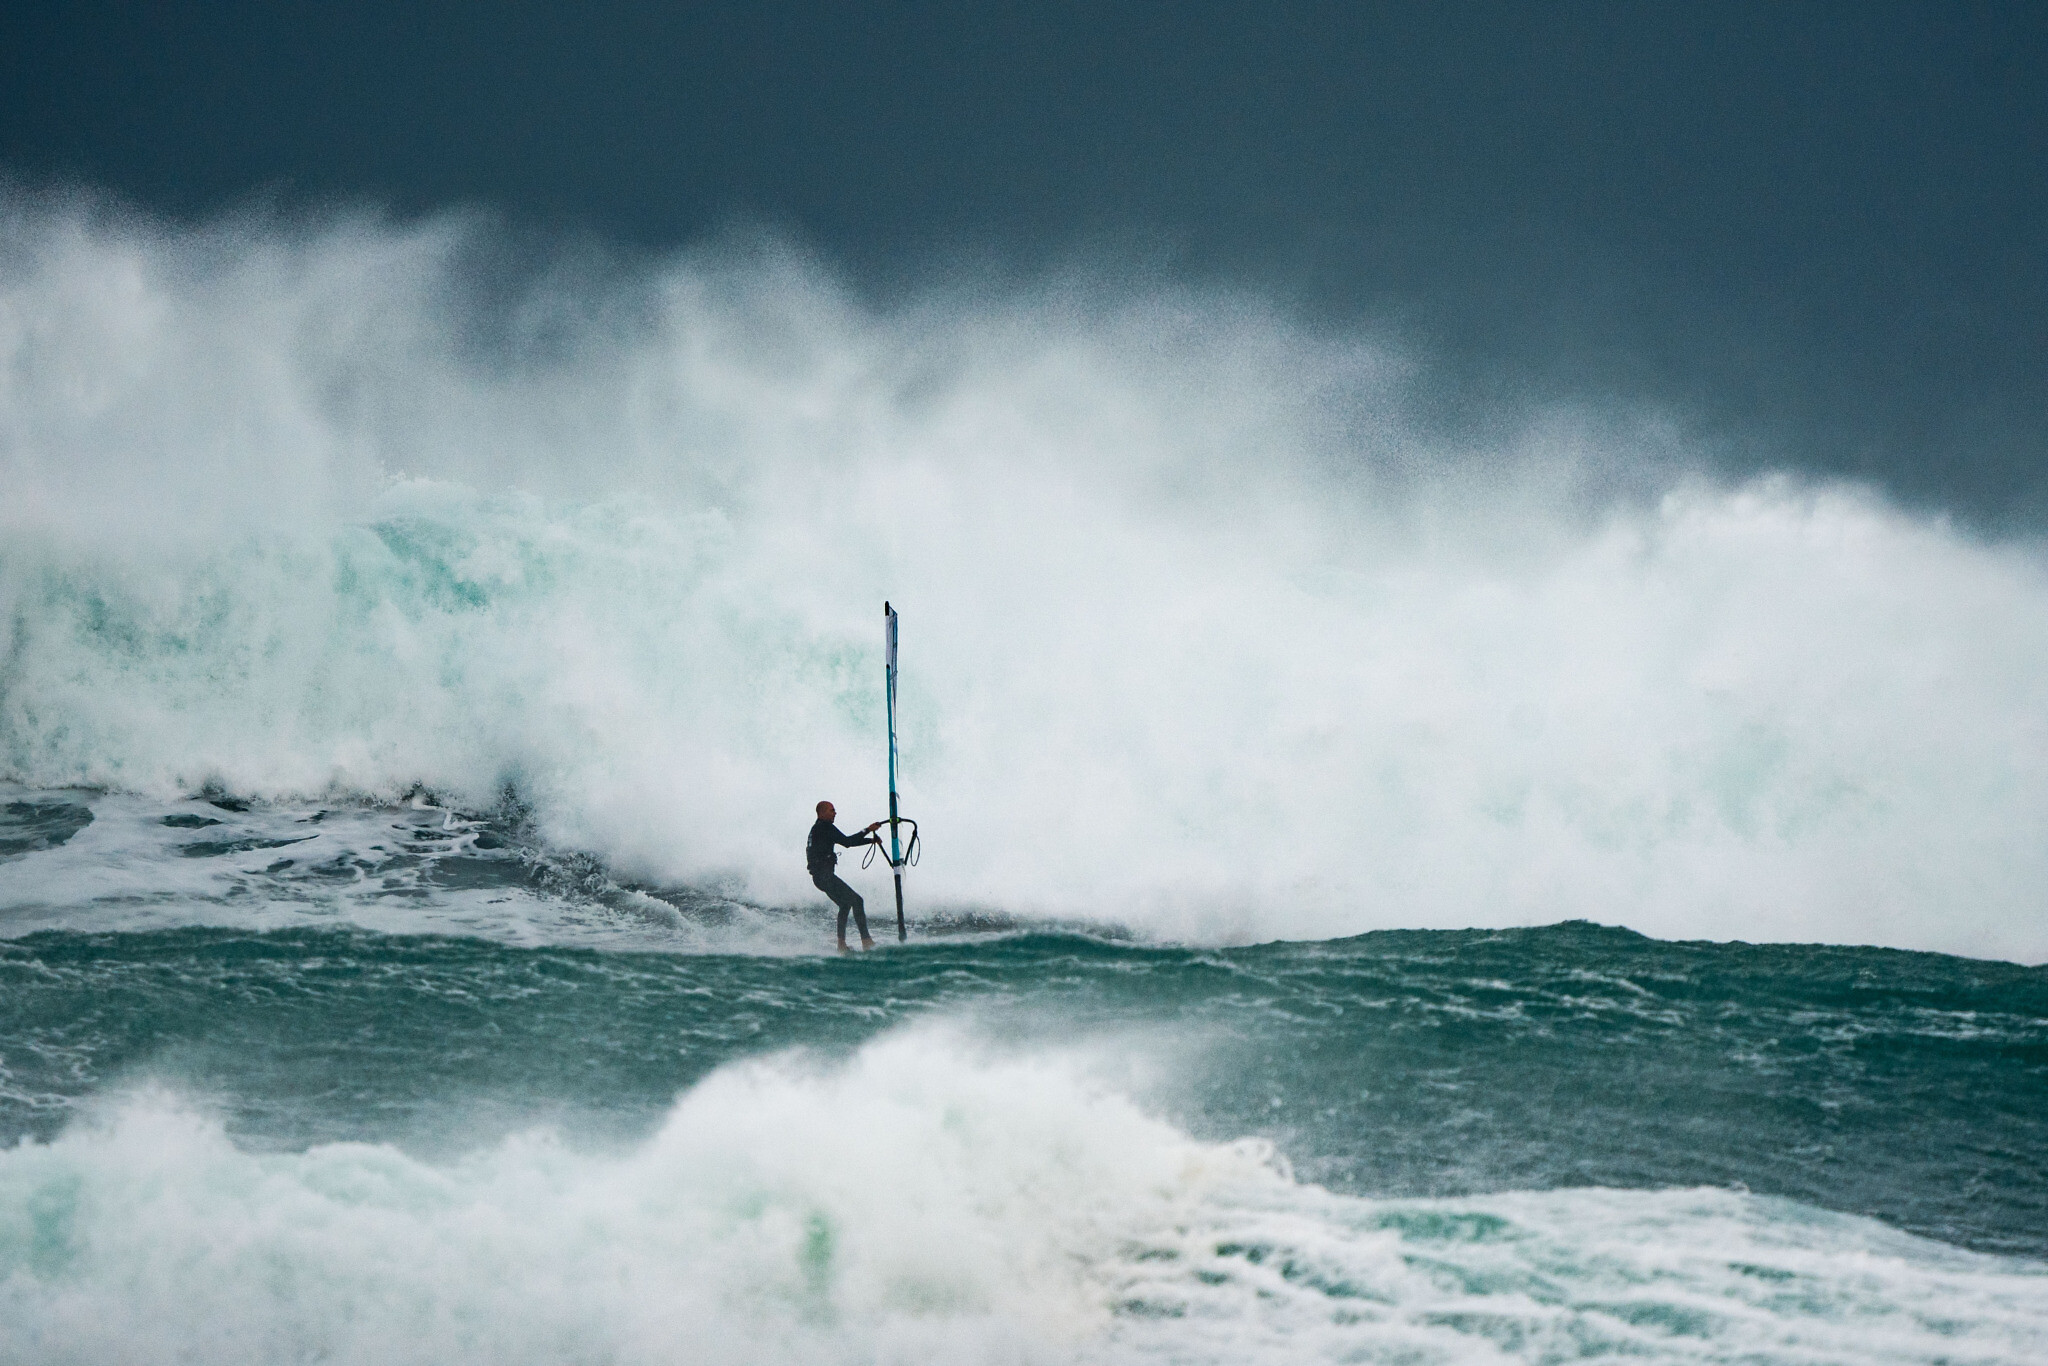 Windsurfer Ori Dagan battles enormous waves at the extreme Storm Riders competition in Haifa, Wednesday, February 17, 2021. (Photo by Uri Magnus/ www.urimagnus.com)